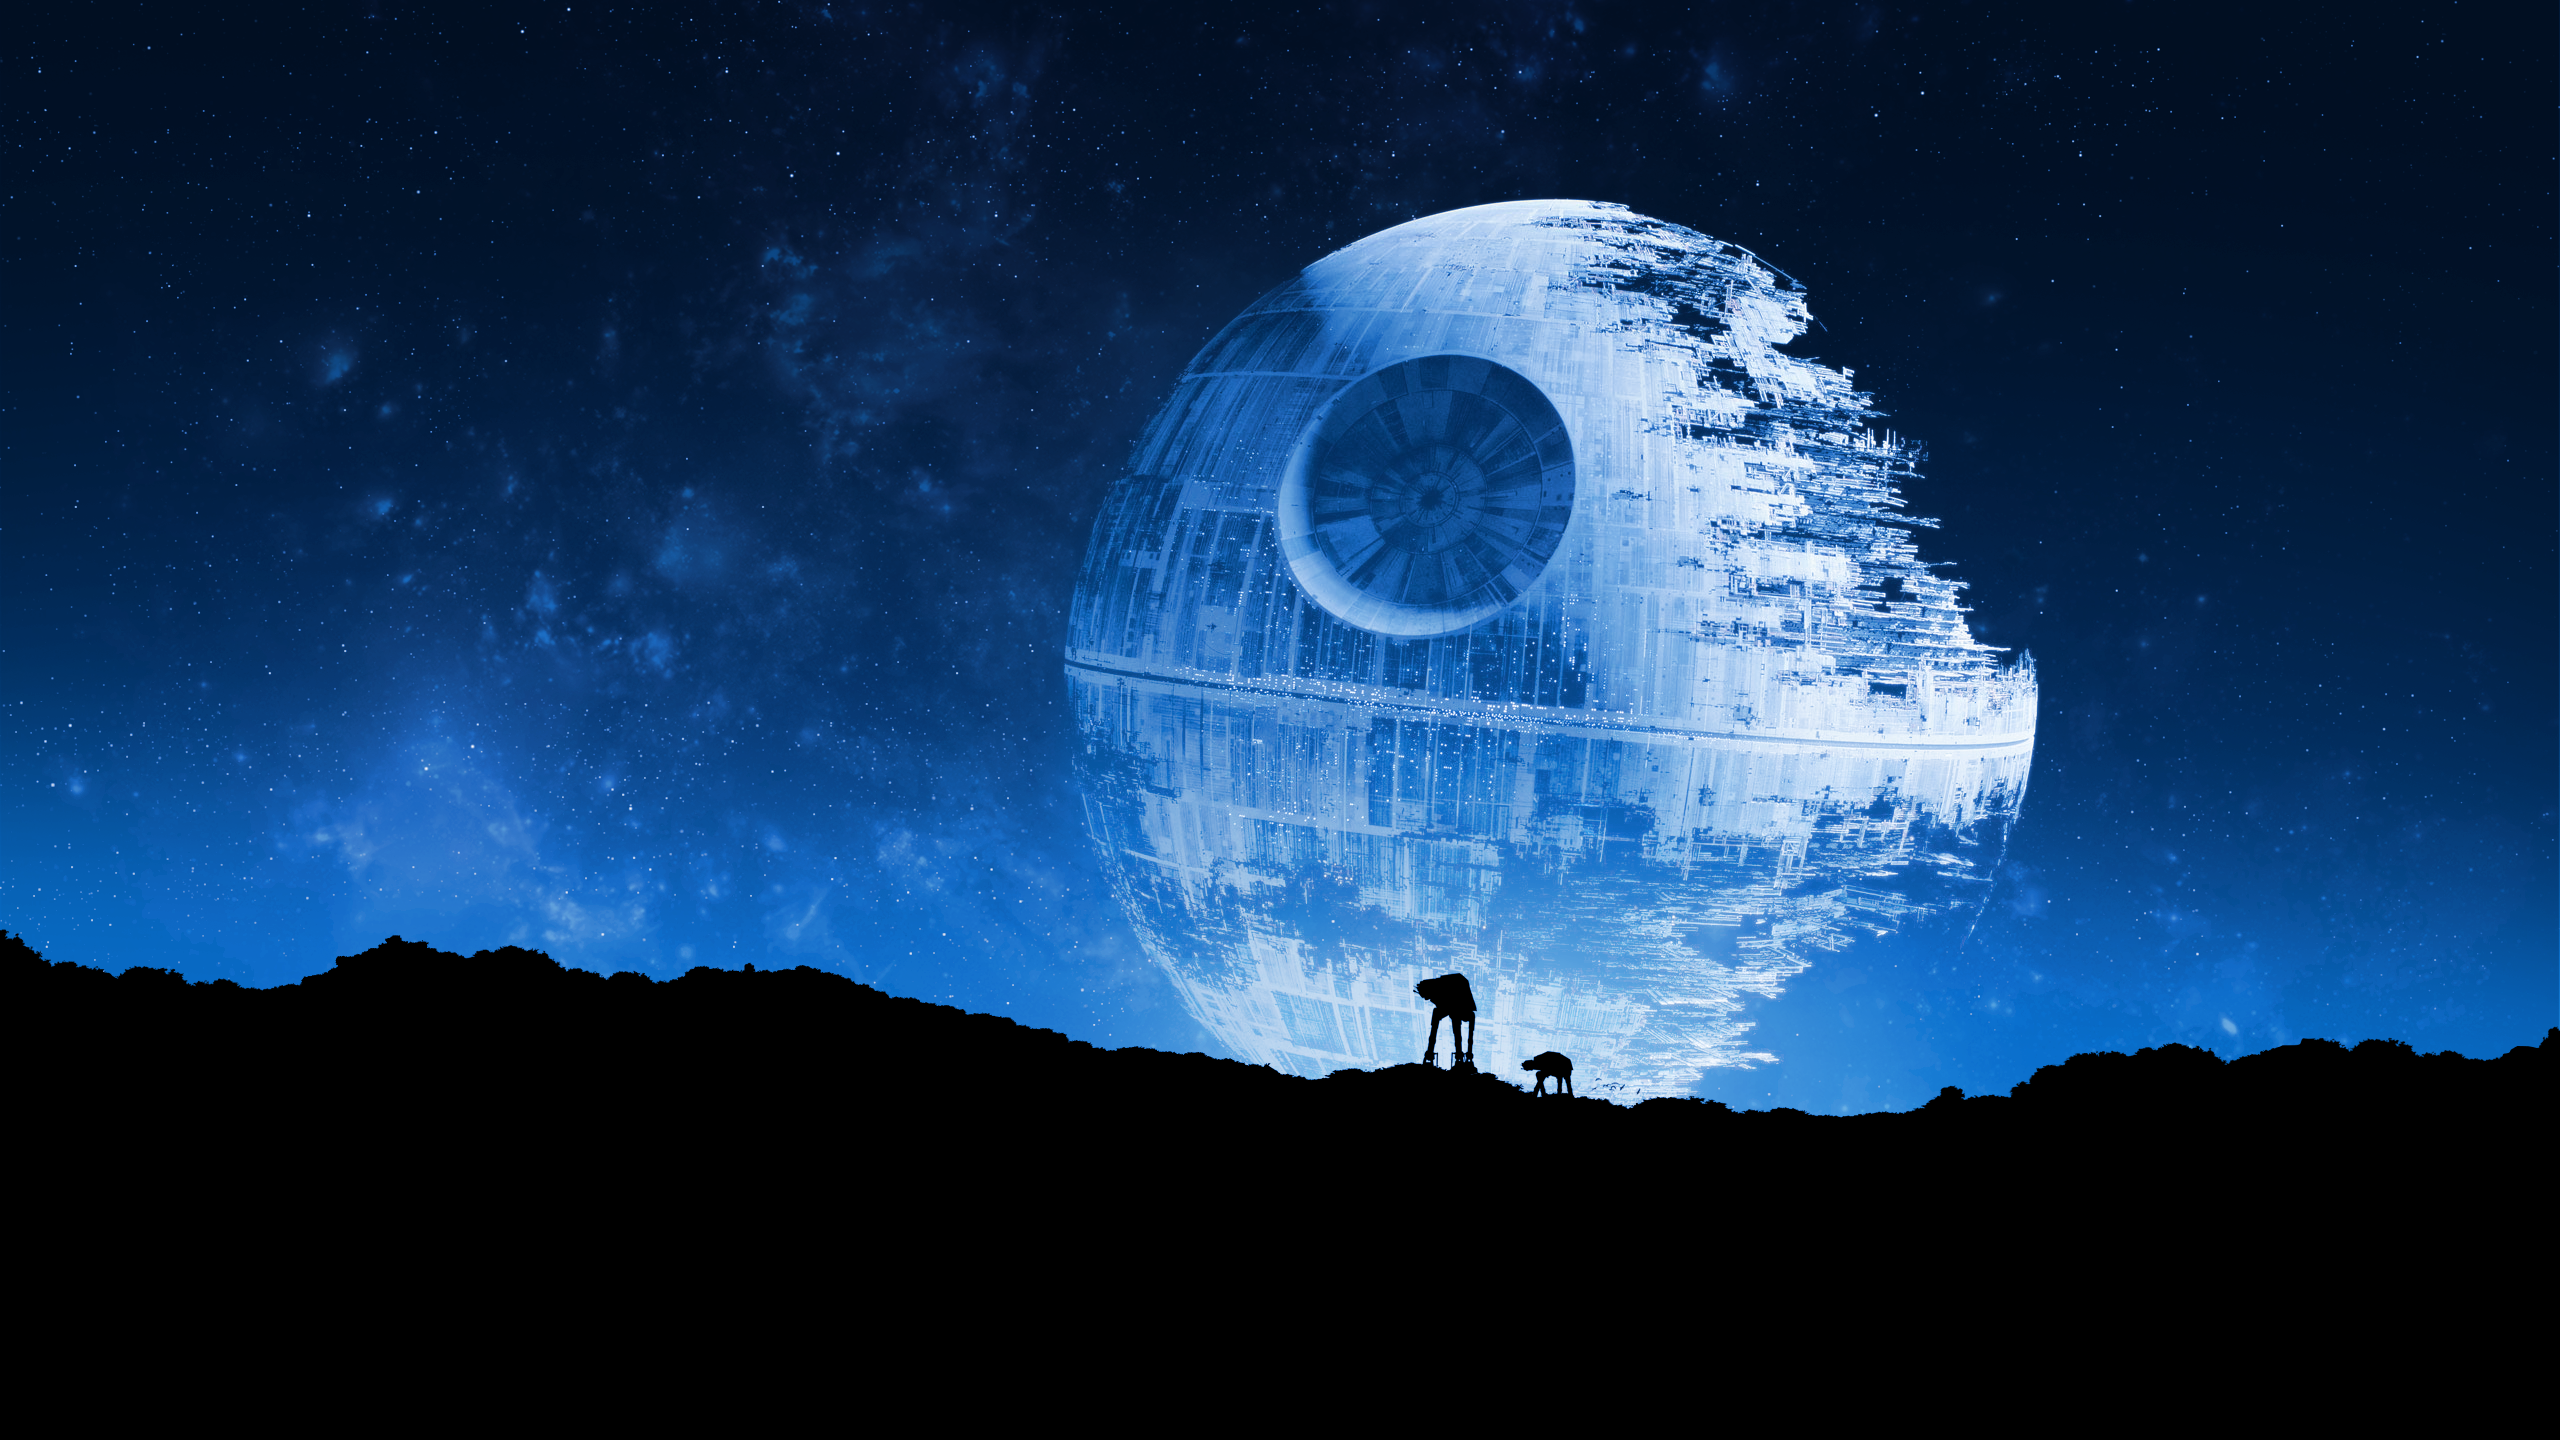 Star Wars Death Star Wallpaper By Rocklou On Deviantart